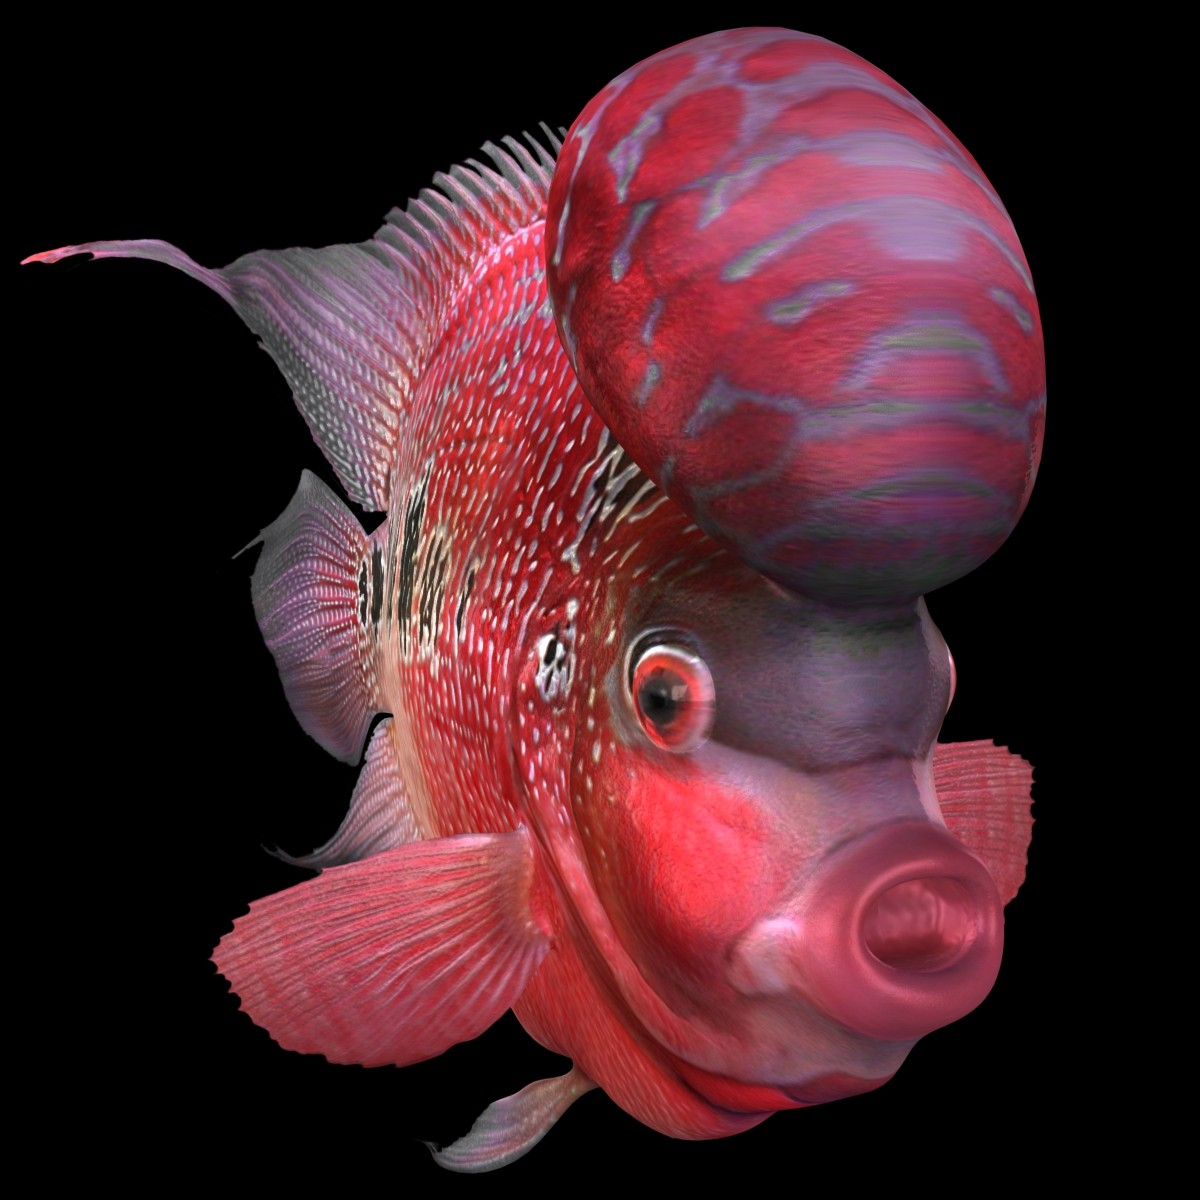 Flowerhorn Fish images